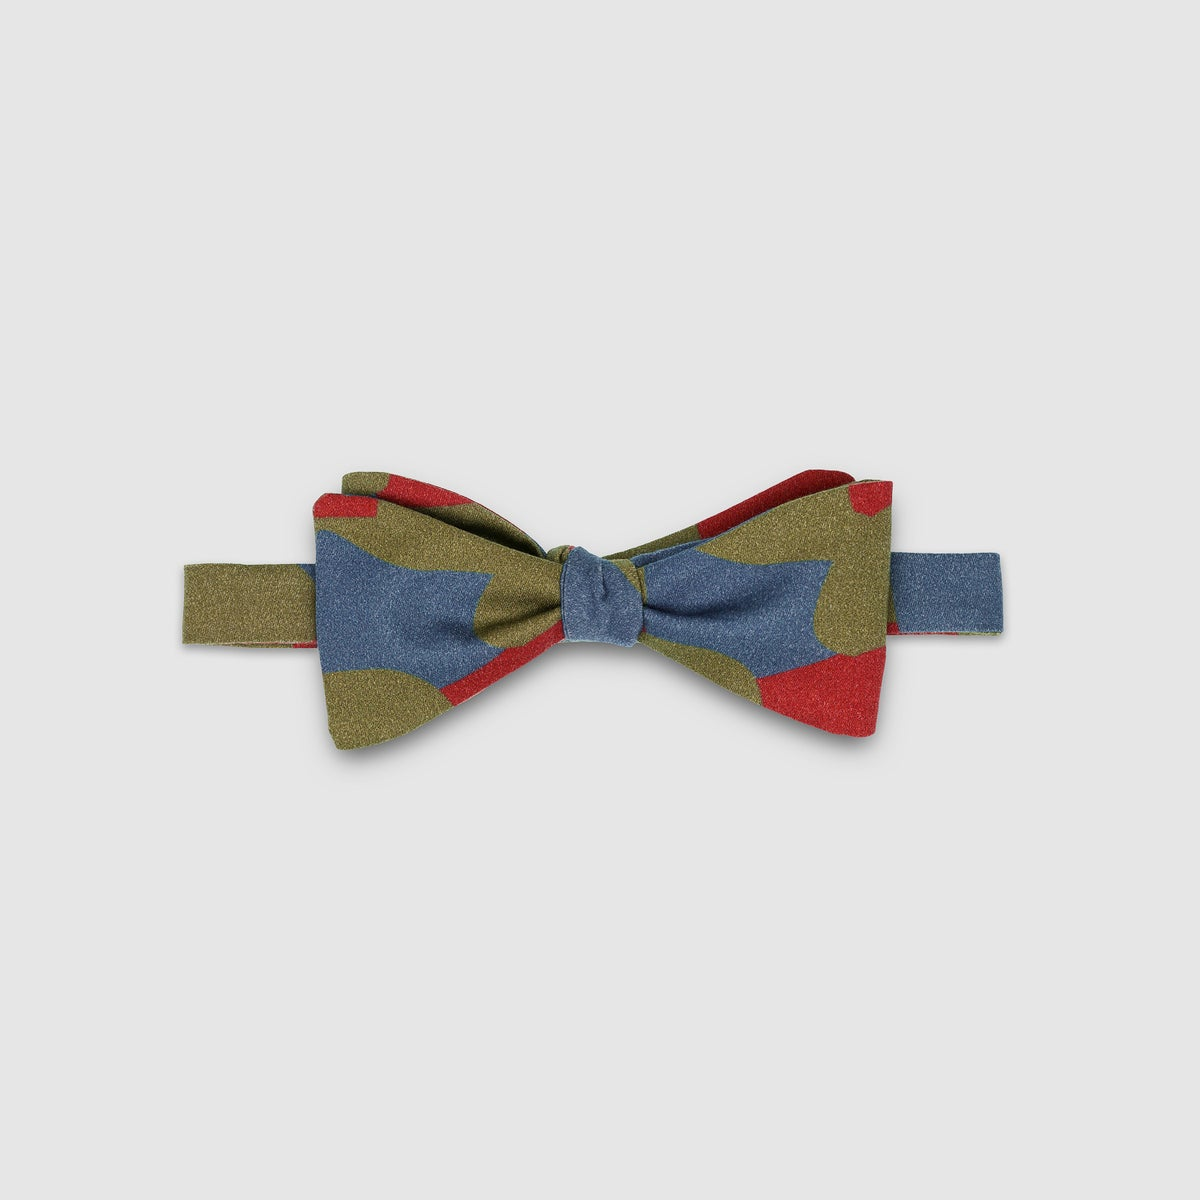 Image of CHARLY - the bow tie